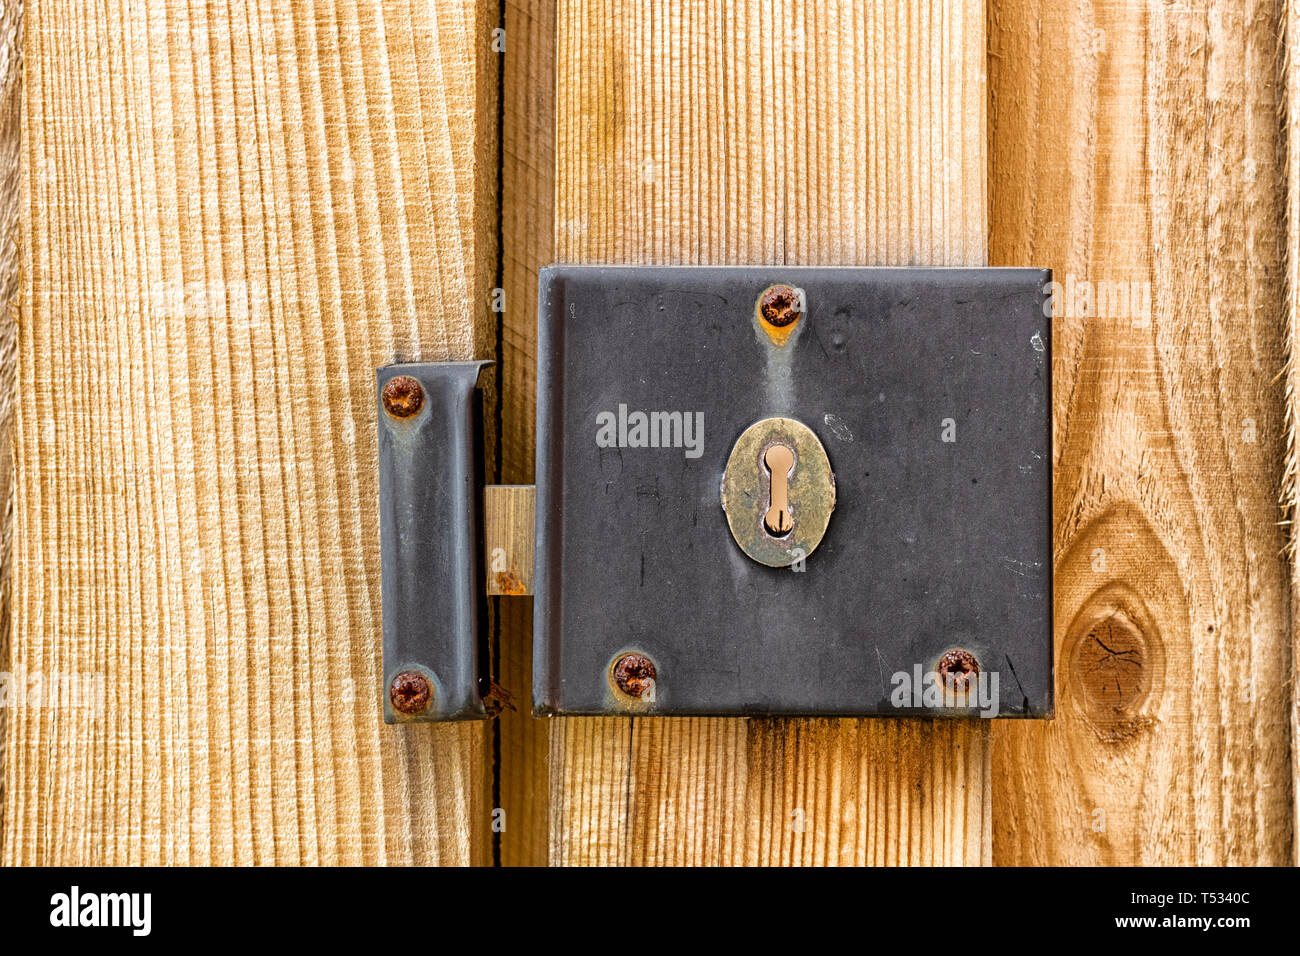 A weathered and worn metal lock mechanism with rusted screws on a wooden gate and fence post close up - Stock Image